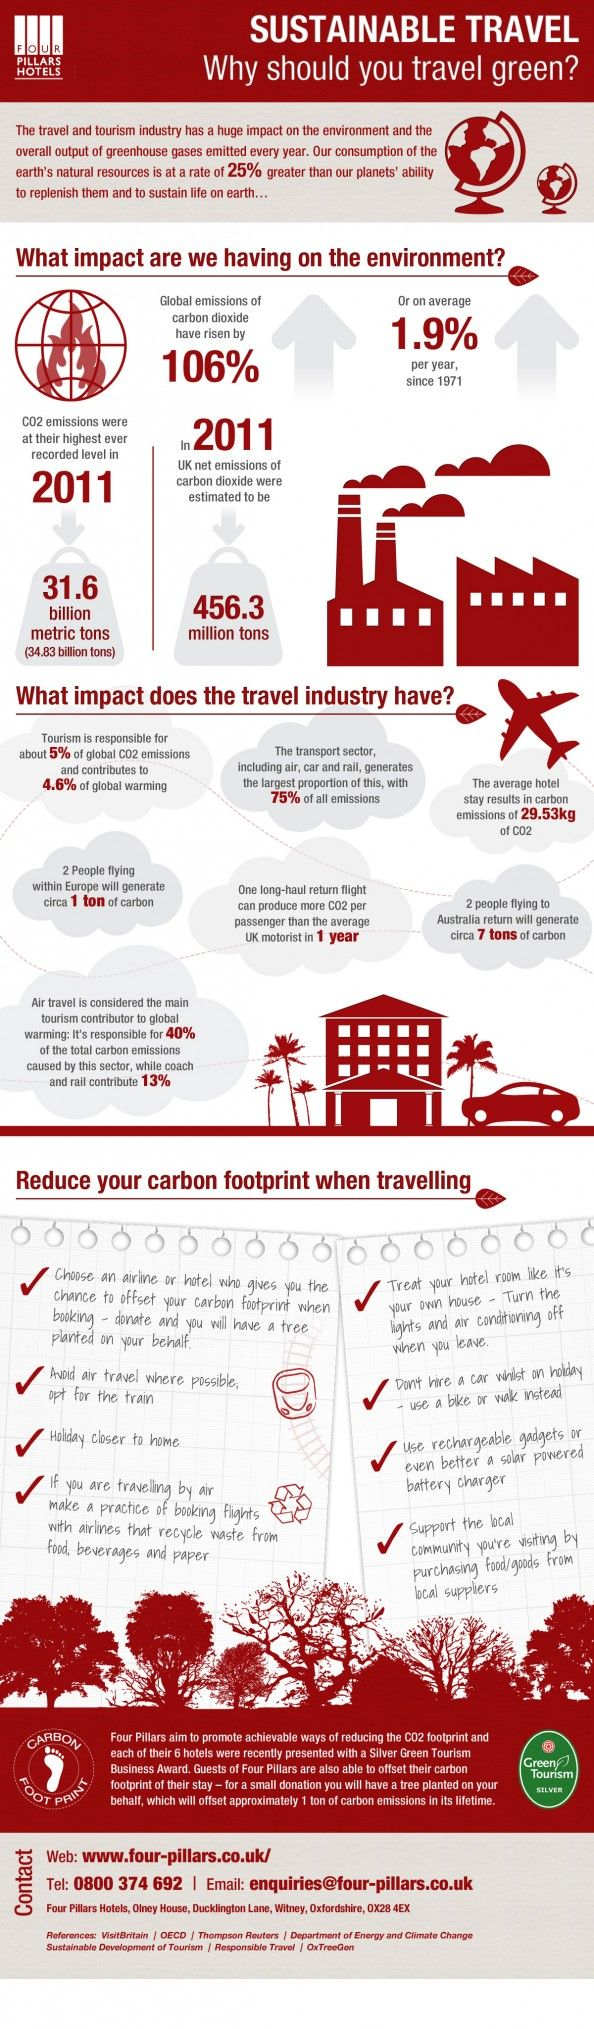 Sustainable Travel: Why Should You #Travel Green? #Infographic